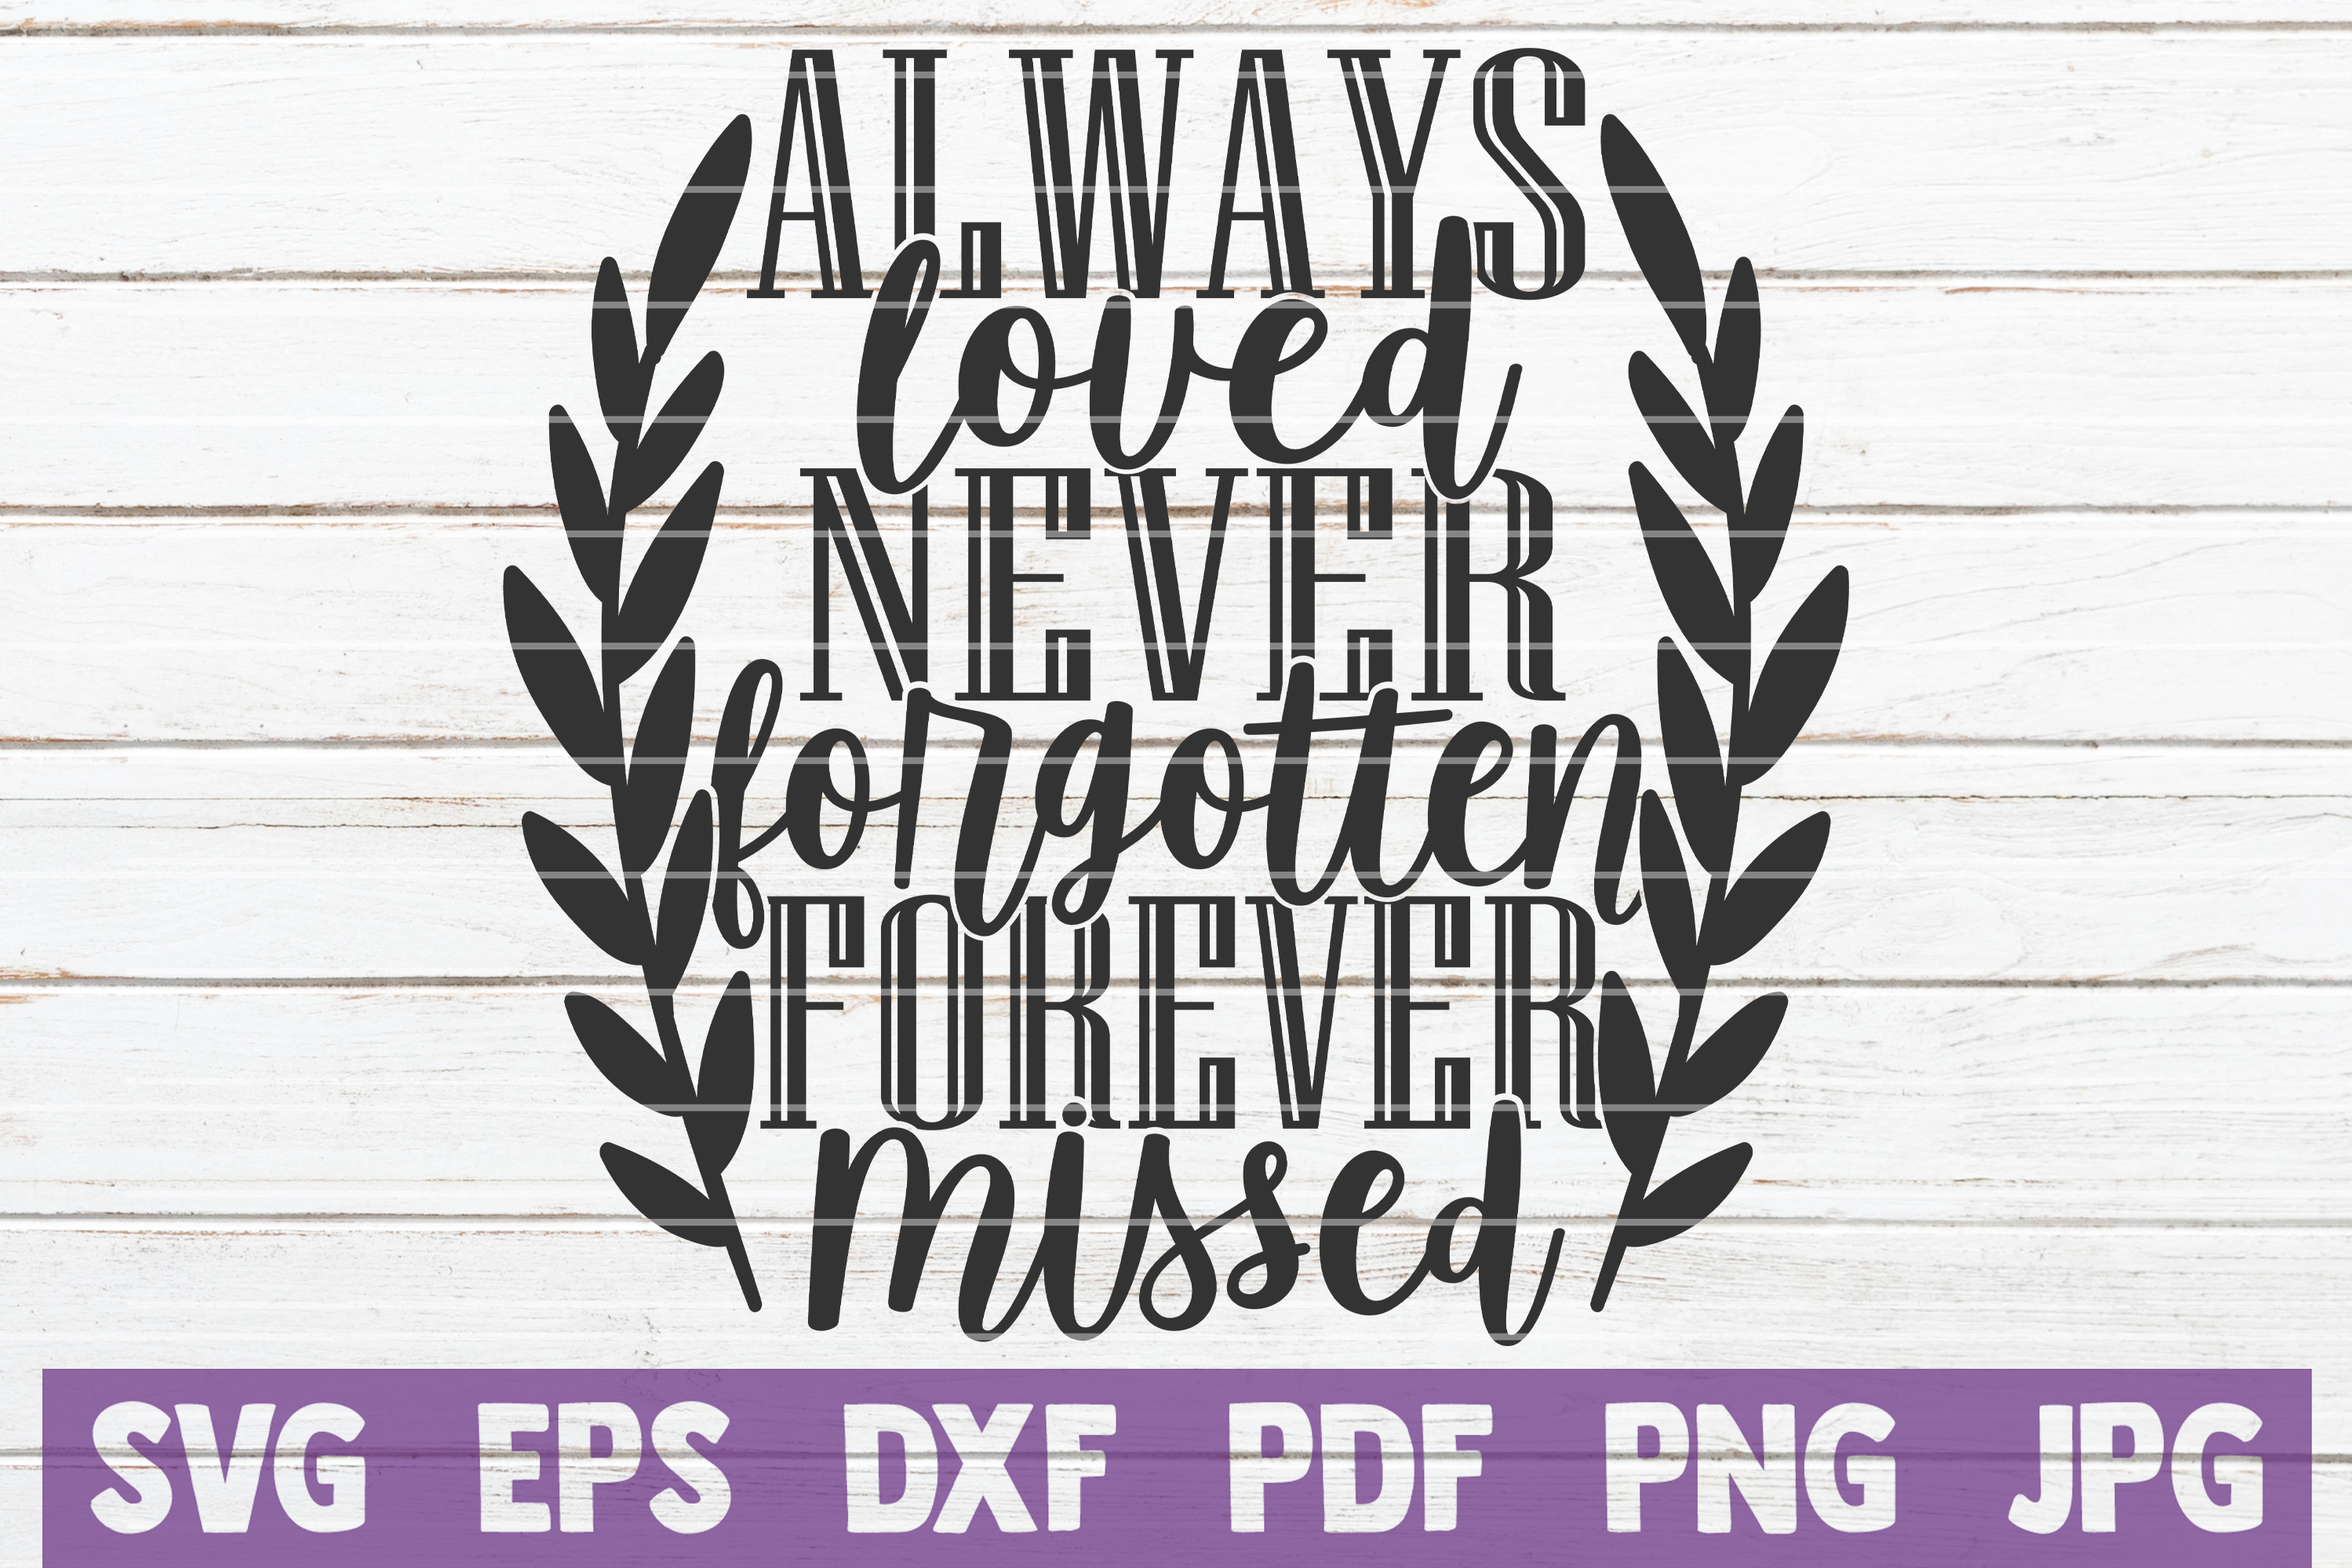 Download Free Always Loved Never Forgotten Graphic By Mintymarshmallows for Cricut Explore, Silhouette and other cutting machines.